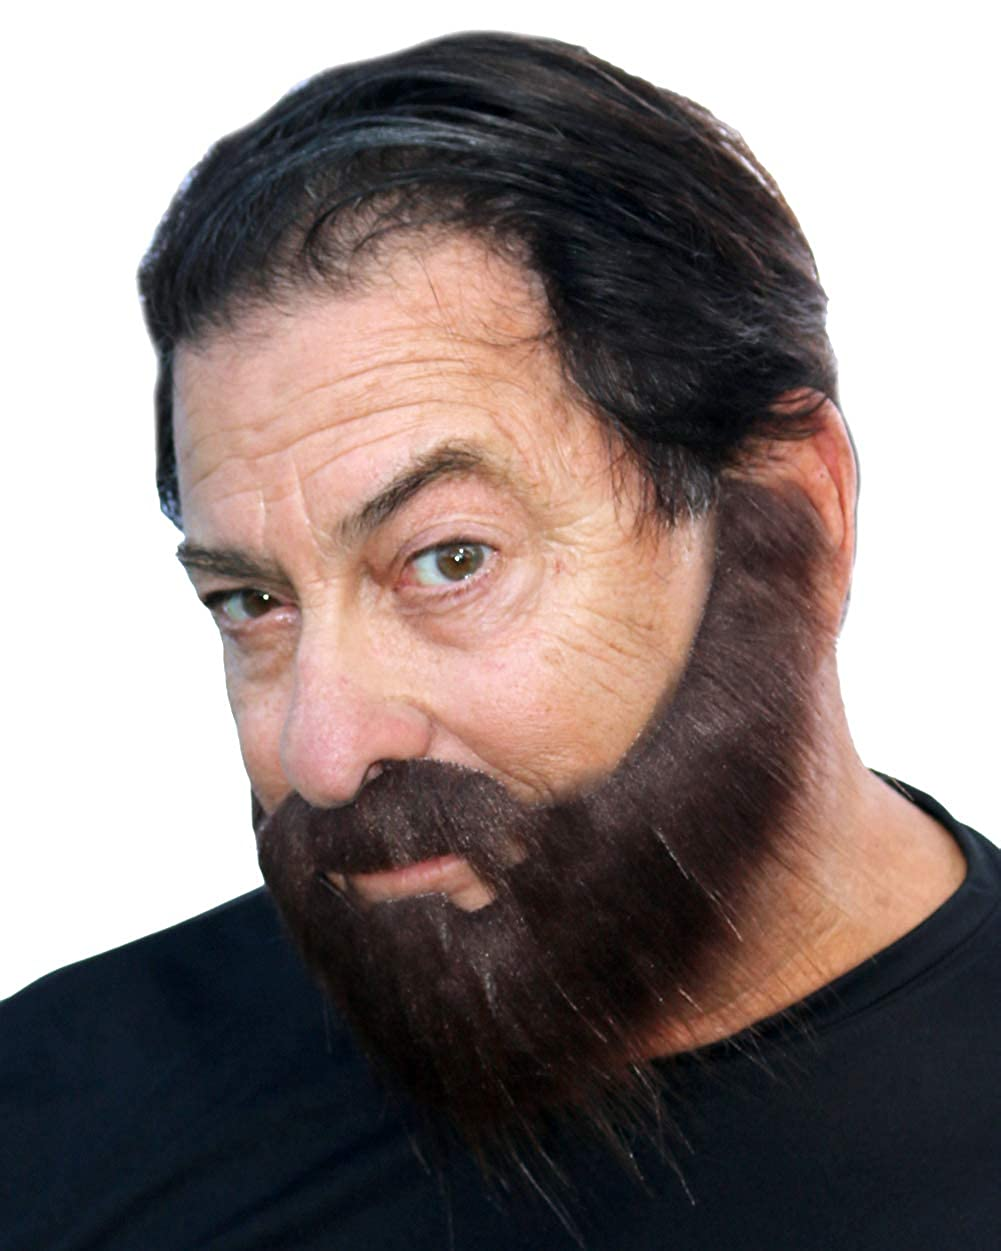 Realistic Looking Long False Costume Beard with Self Adhesive Full Beard with Mustache and Soul Patch